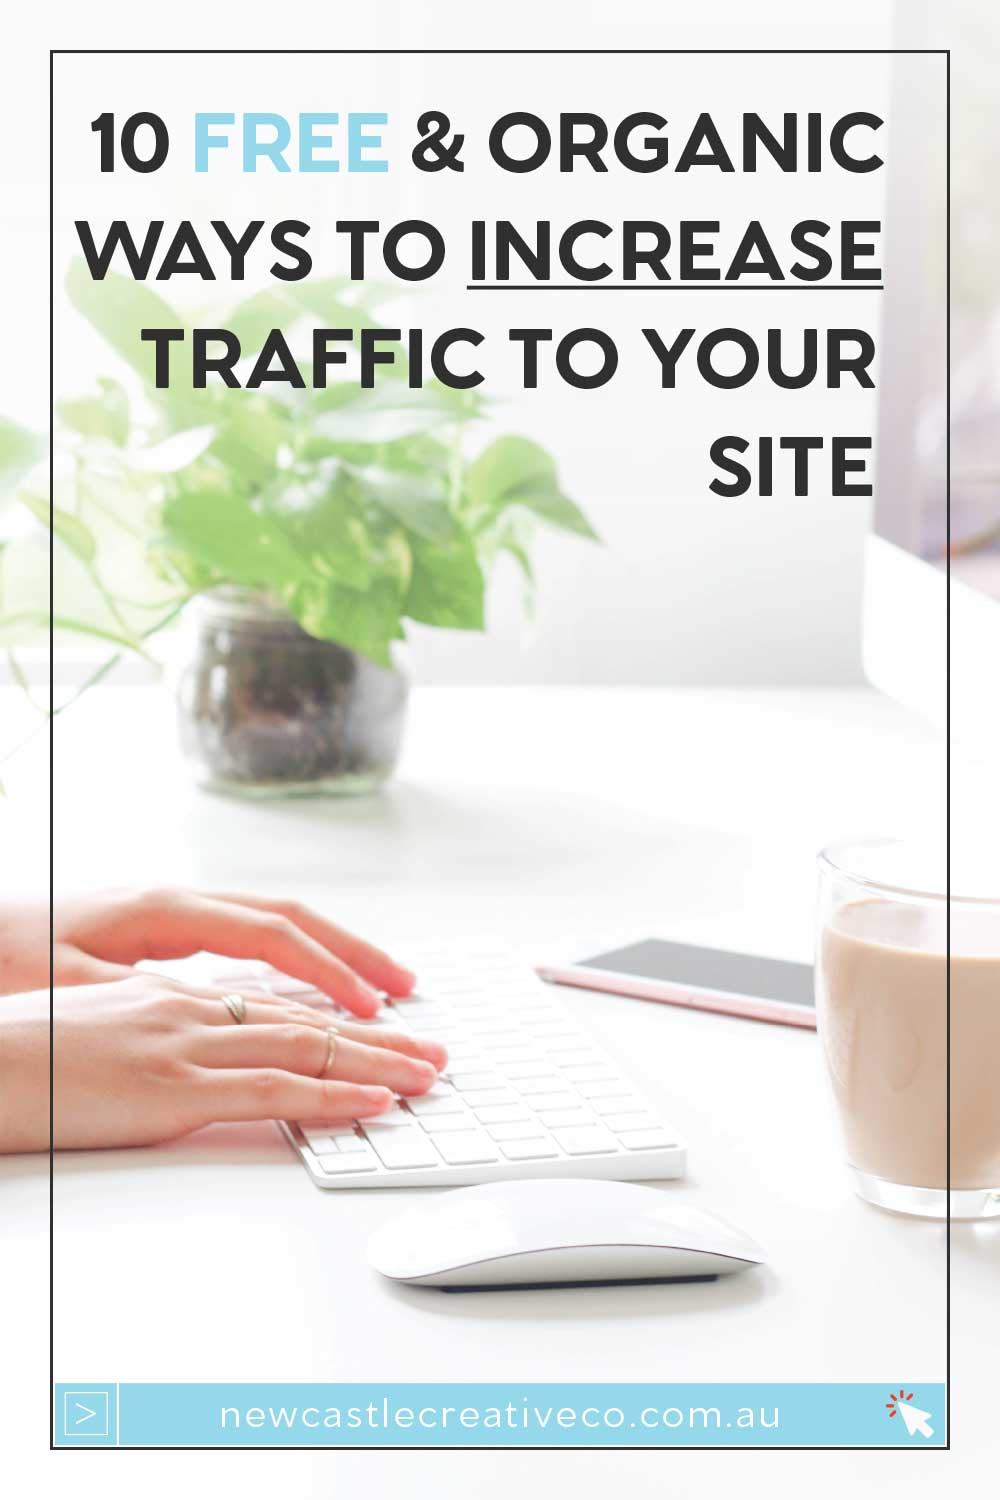 10 free and organic ways to increase traffic to your site | Newcastle Creative Co